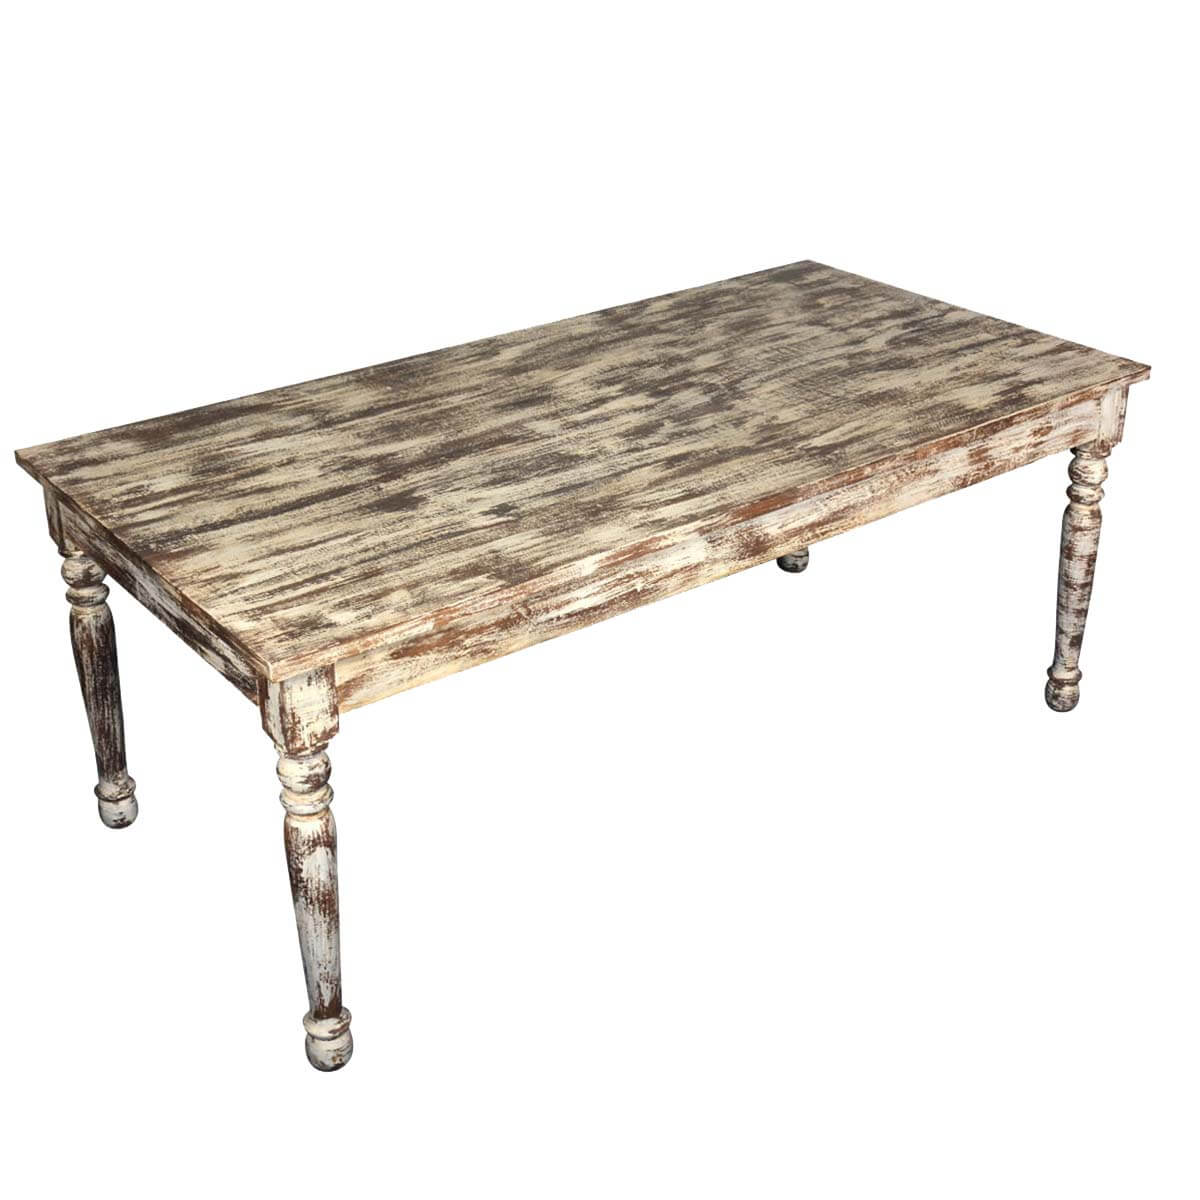 Distressed White Finish Mango Wood Farmhouse Dining Table